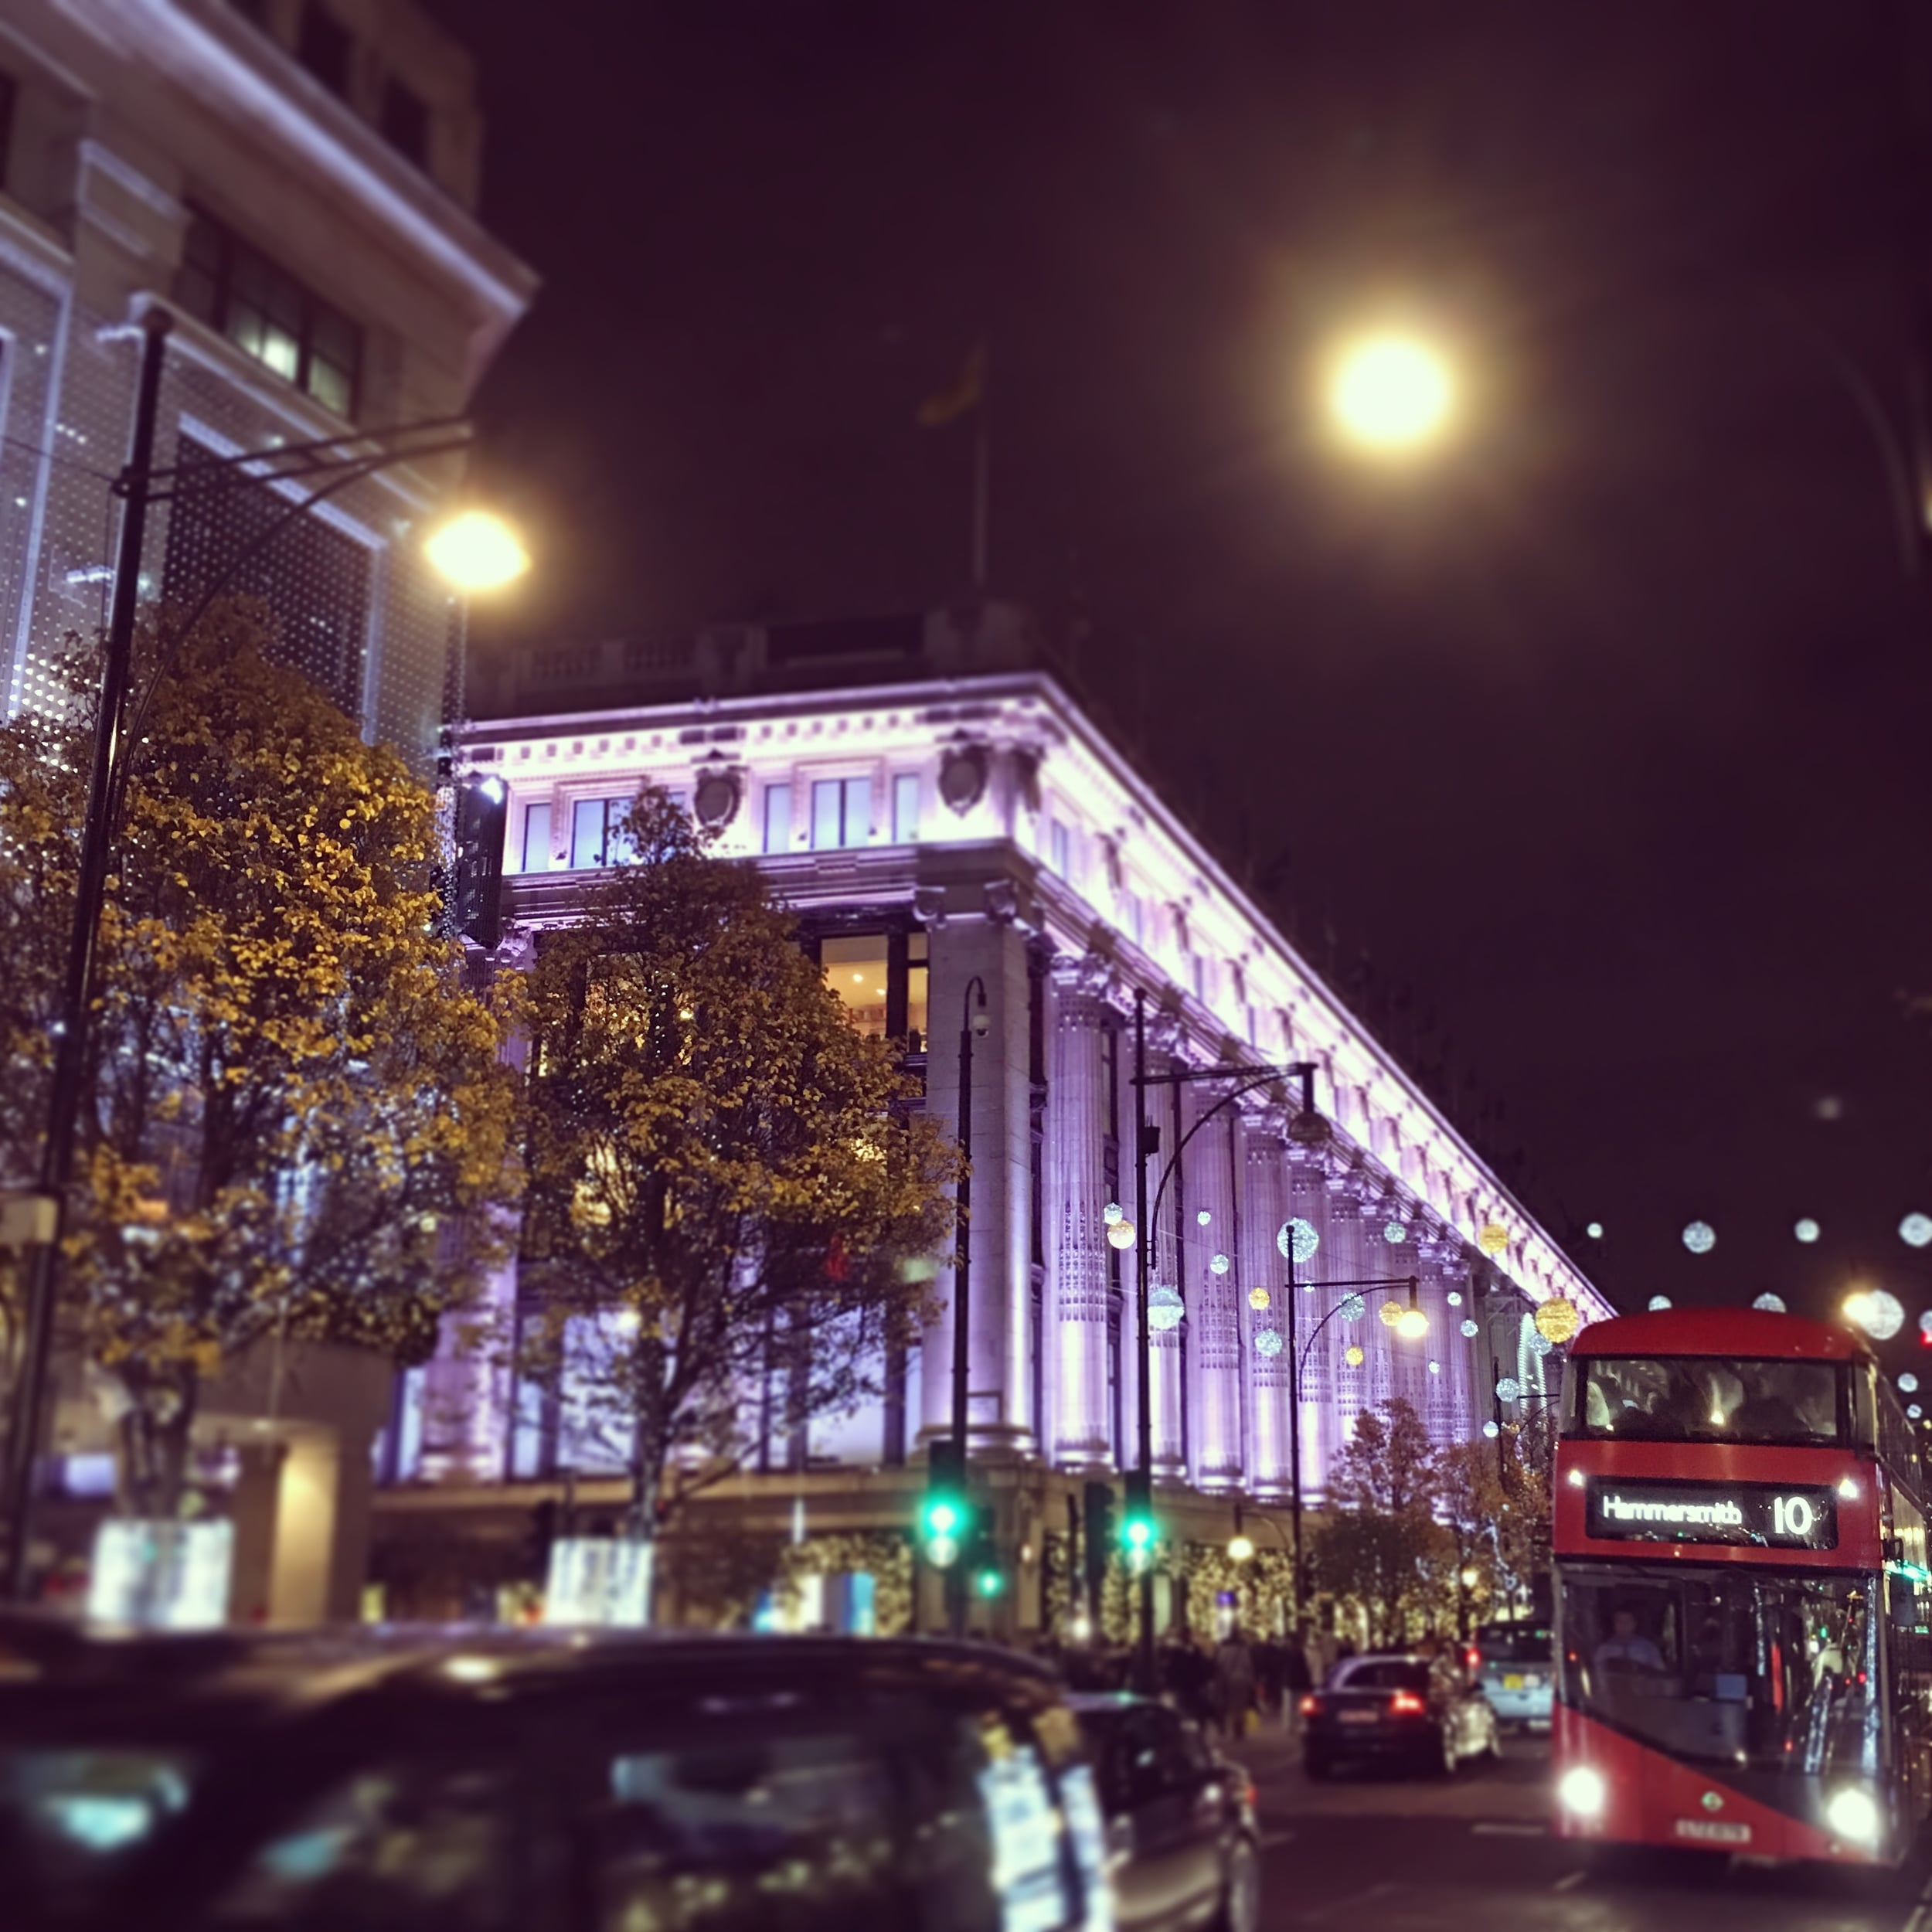 Selfridge's on Oxford Street